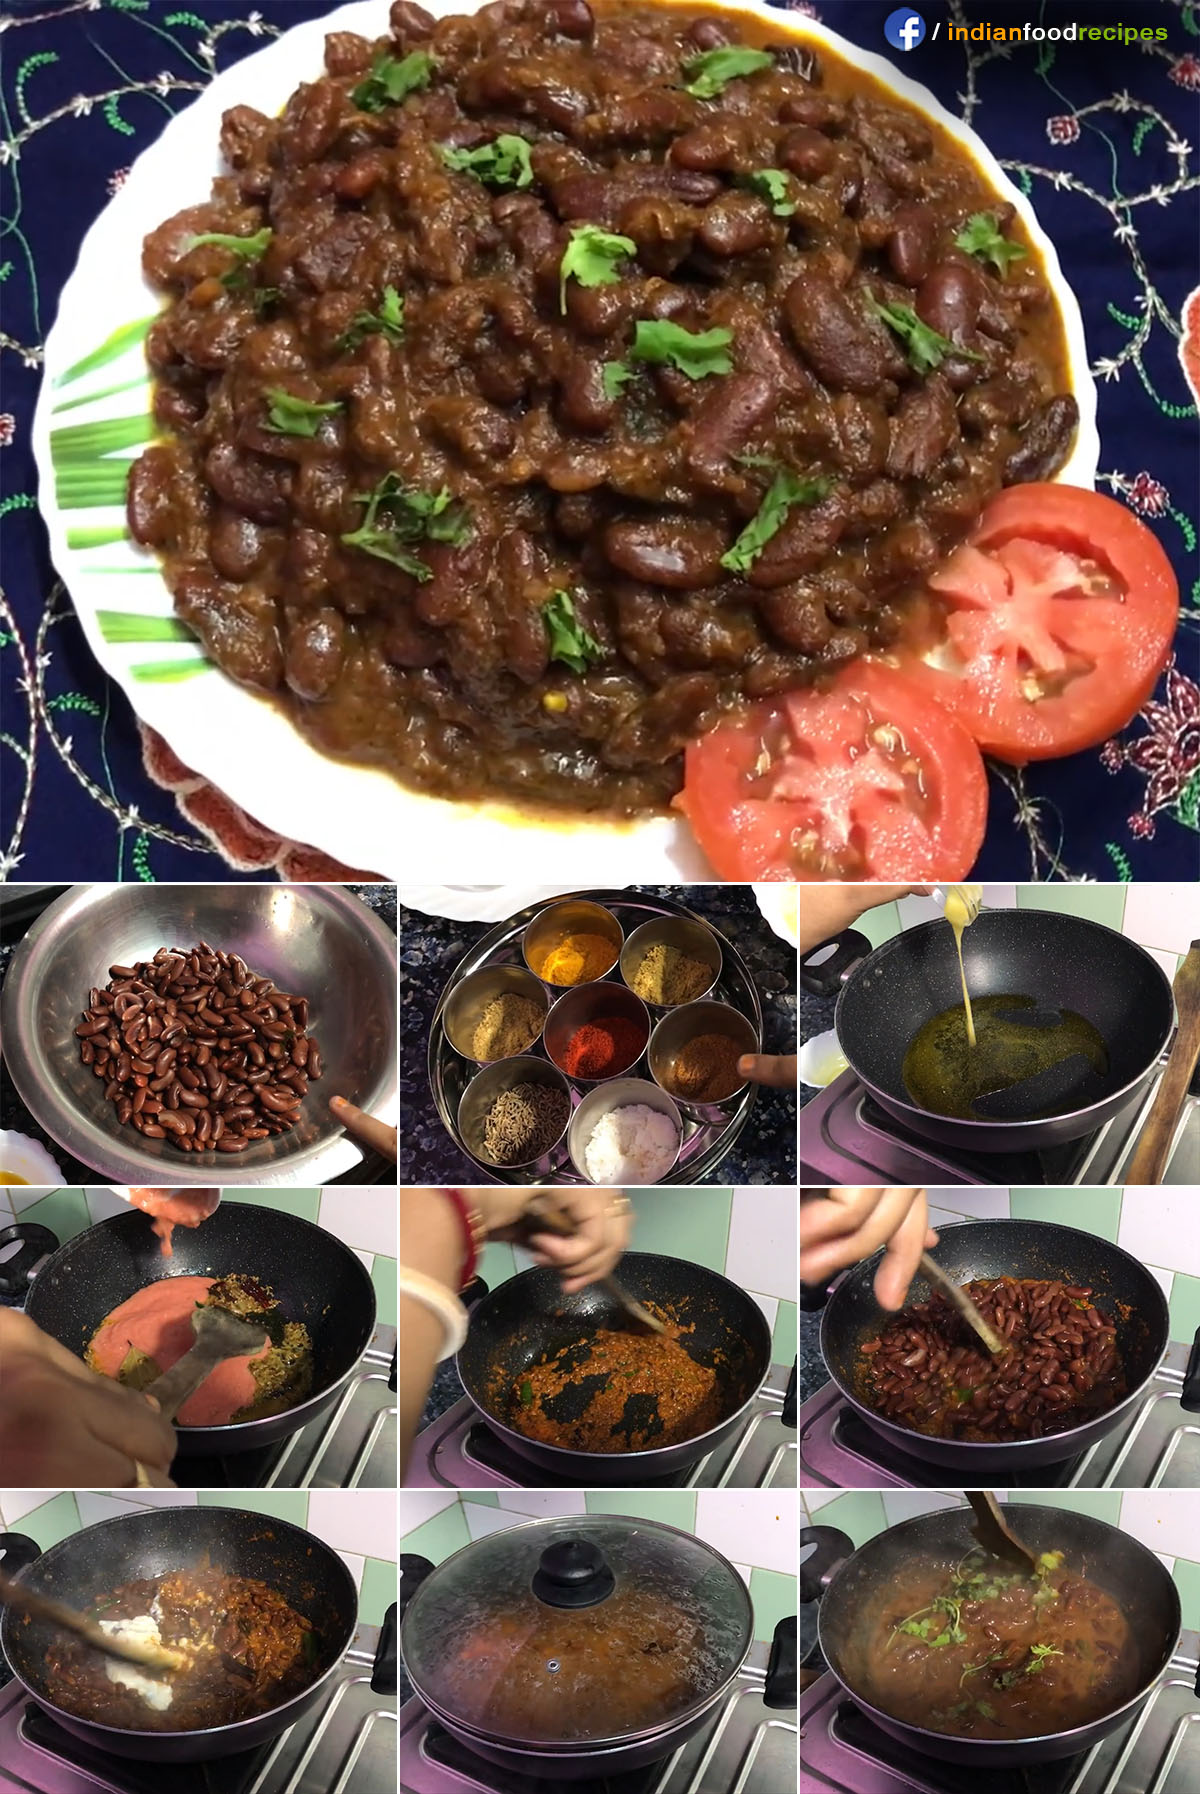 Kashmiri Rajma | Authentic Kashmiri Rajma Masala recipe step by step pictures